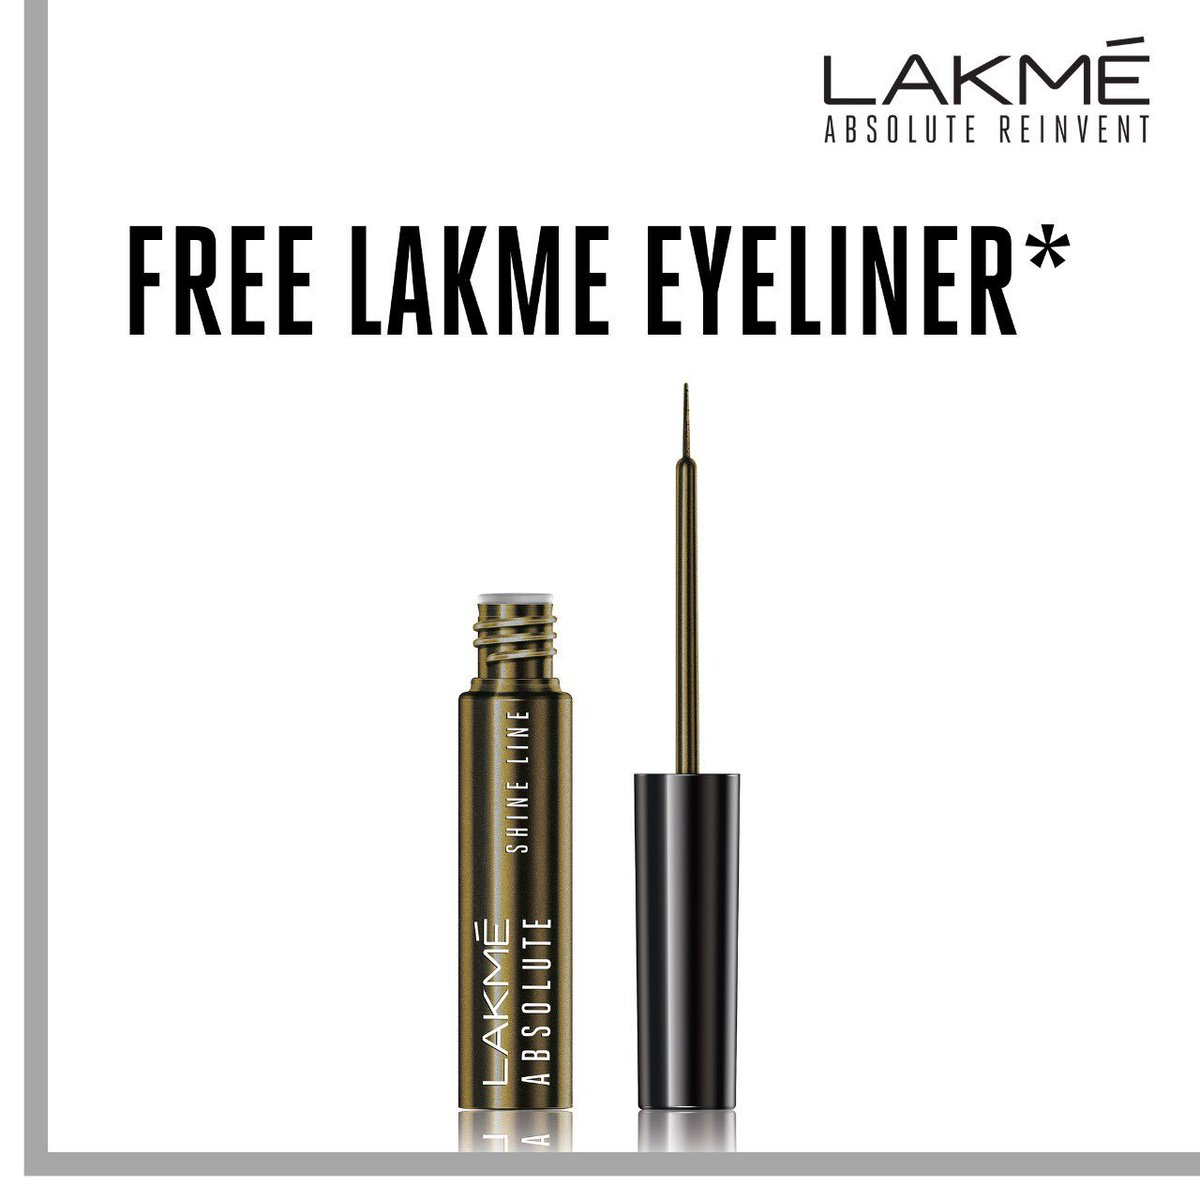 Lakmemakeup Photos And Hastag Pensil Alis Lakme Senayan City Get Fashion Ready With Absolute Reinvent Visit Boutique At Lg Floor Free Make Over Idr 50000 Off